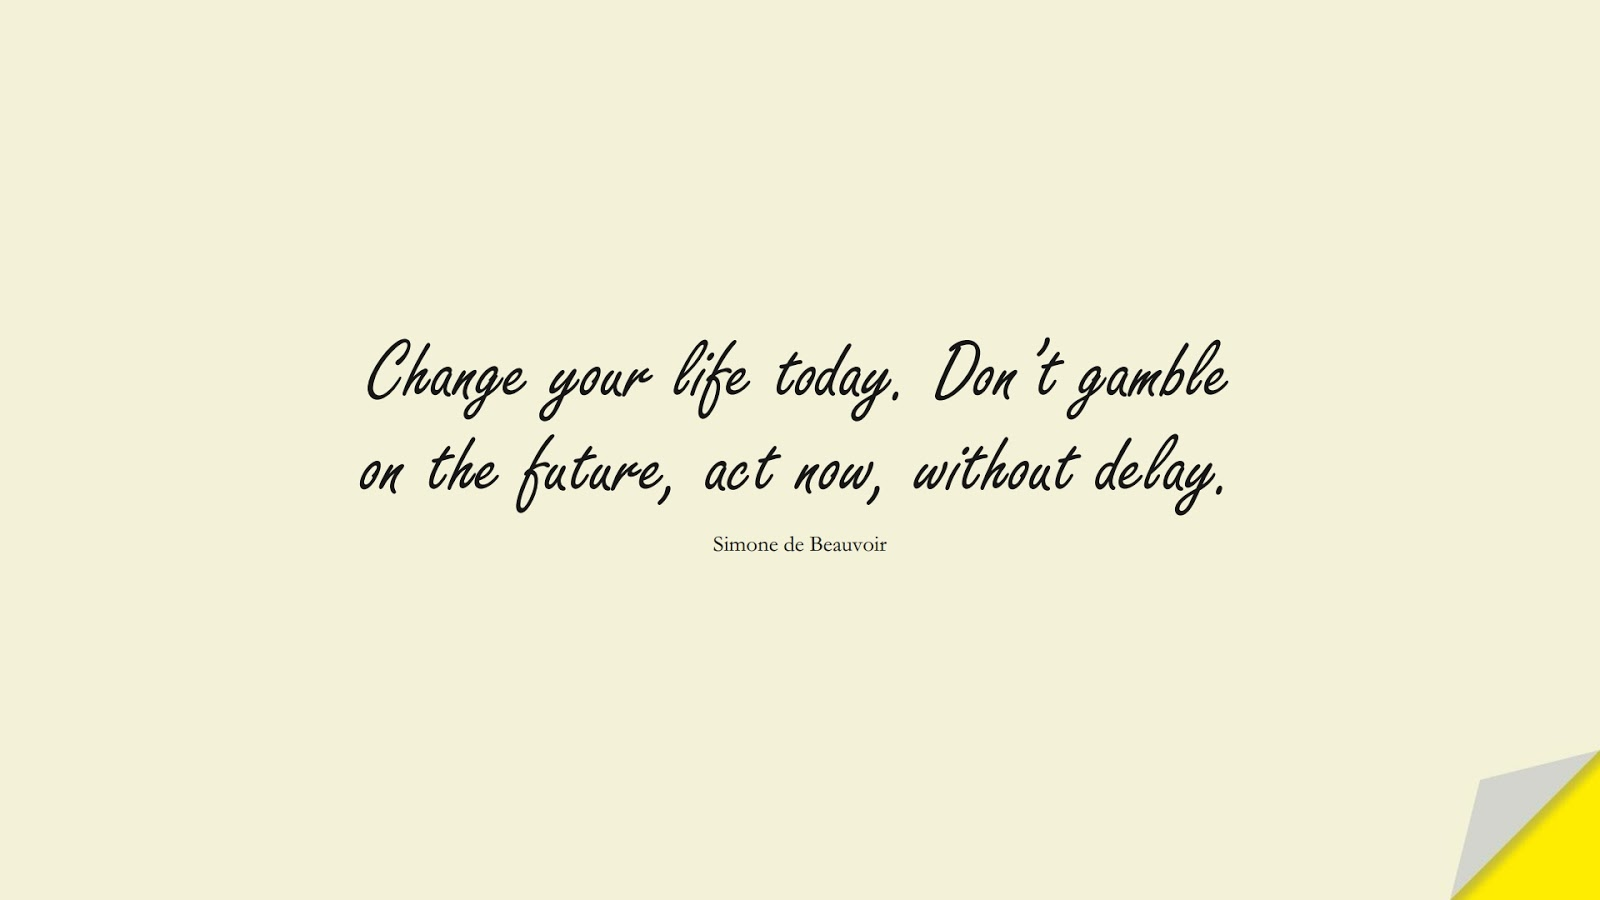 Change your life today. Don't gamble on the future, act now, without delay. (Simone de Beauvoir);  #EncouragingQuotes